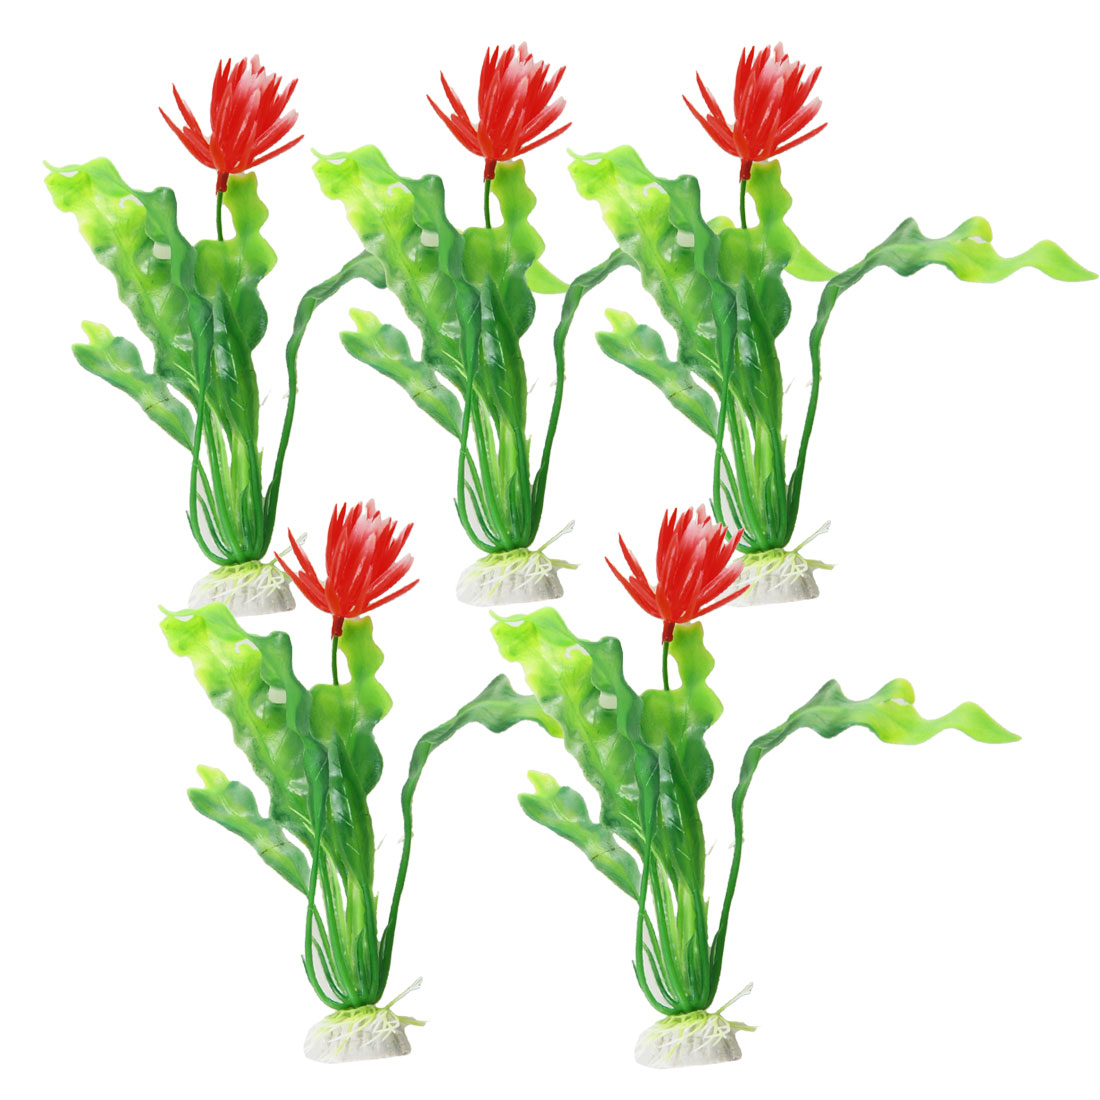 "5 x Red Green Plastic Flower Plant Ornament 7.7"" for Aquarium Fish Tank"